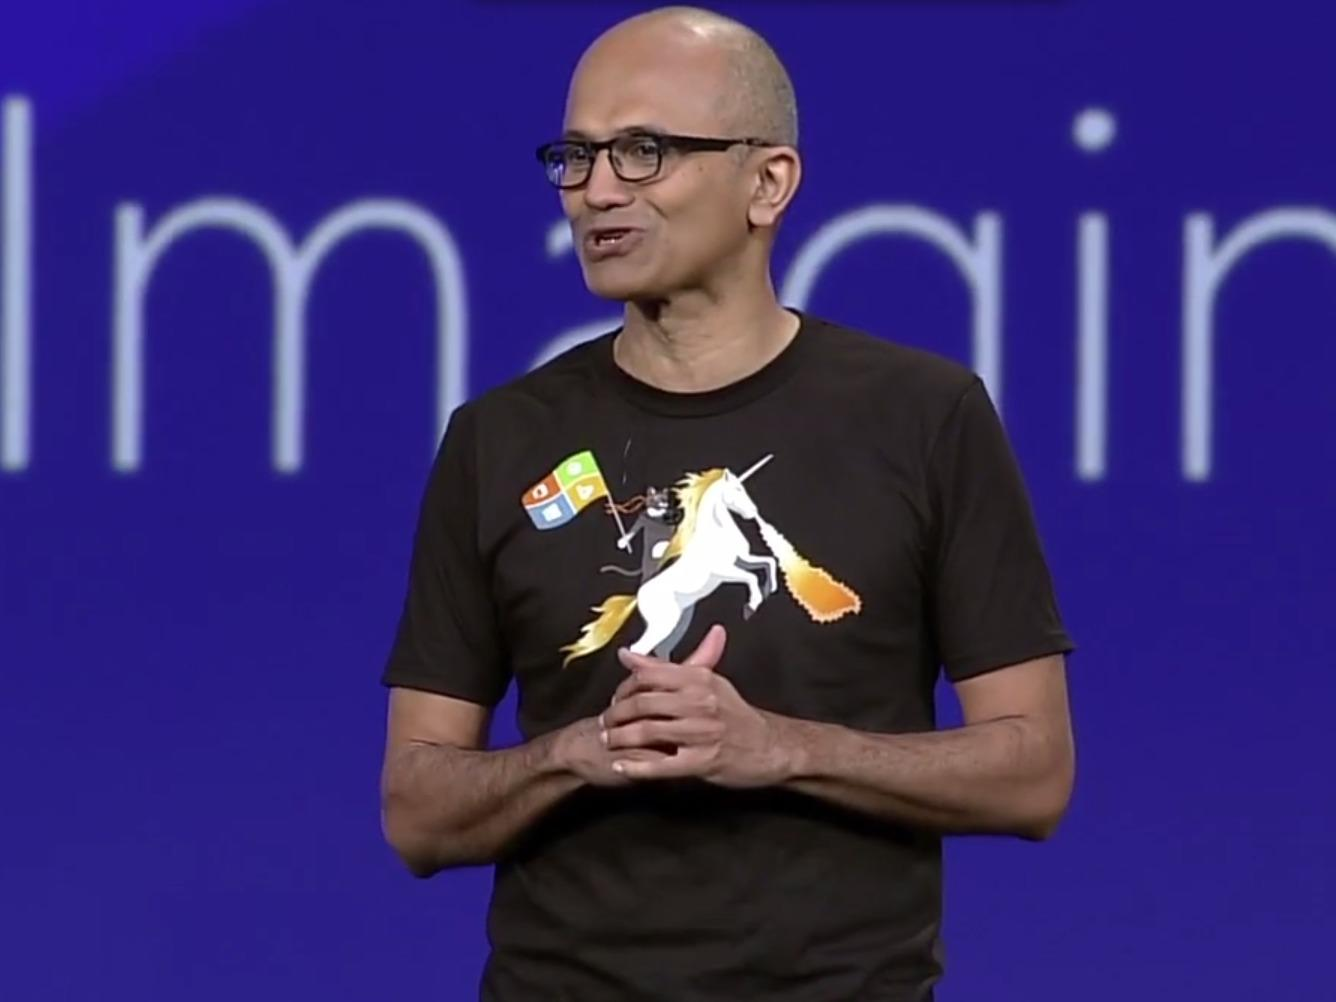 Microsoft CEO Satya Nadella's genius plan: to swap one monopoly for another